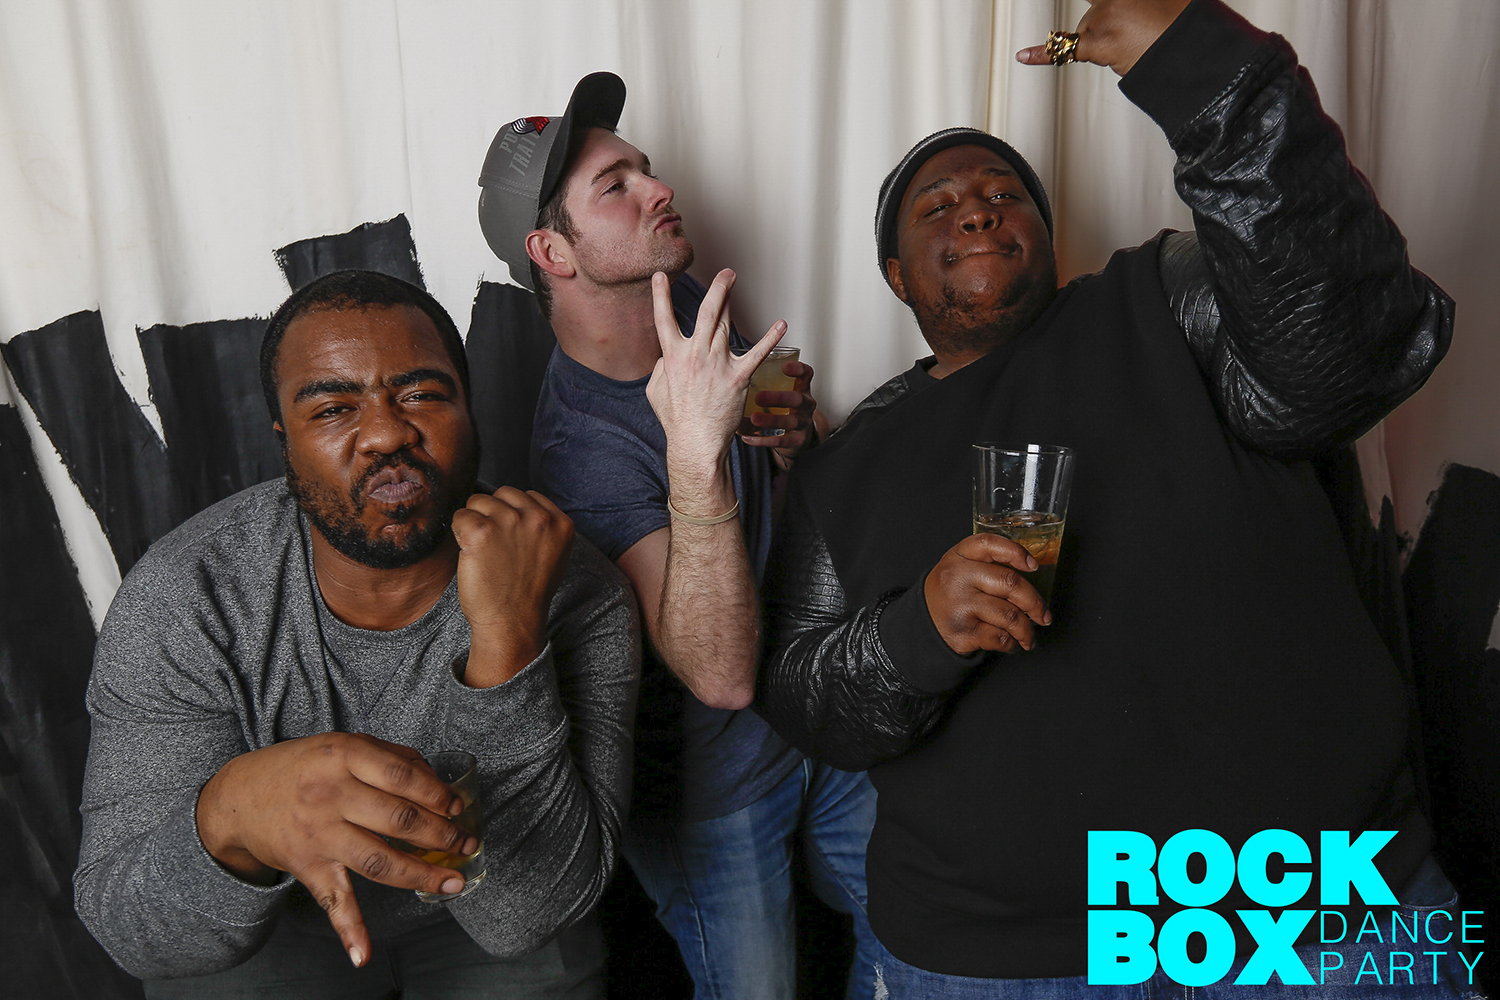 Rock box feb 2015-0162.jpg